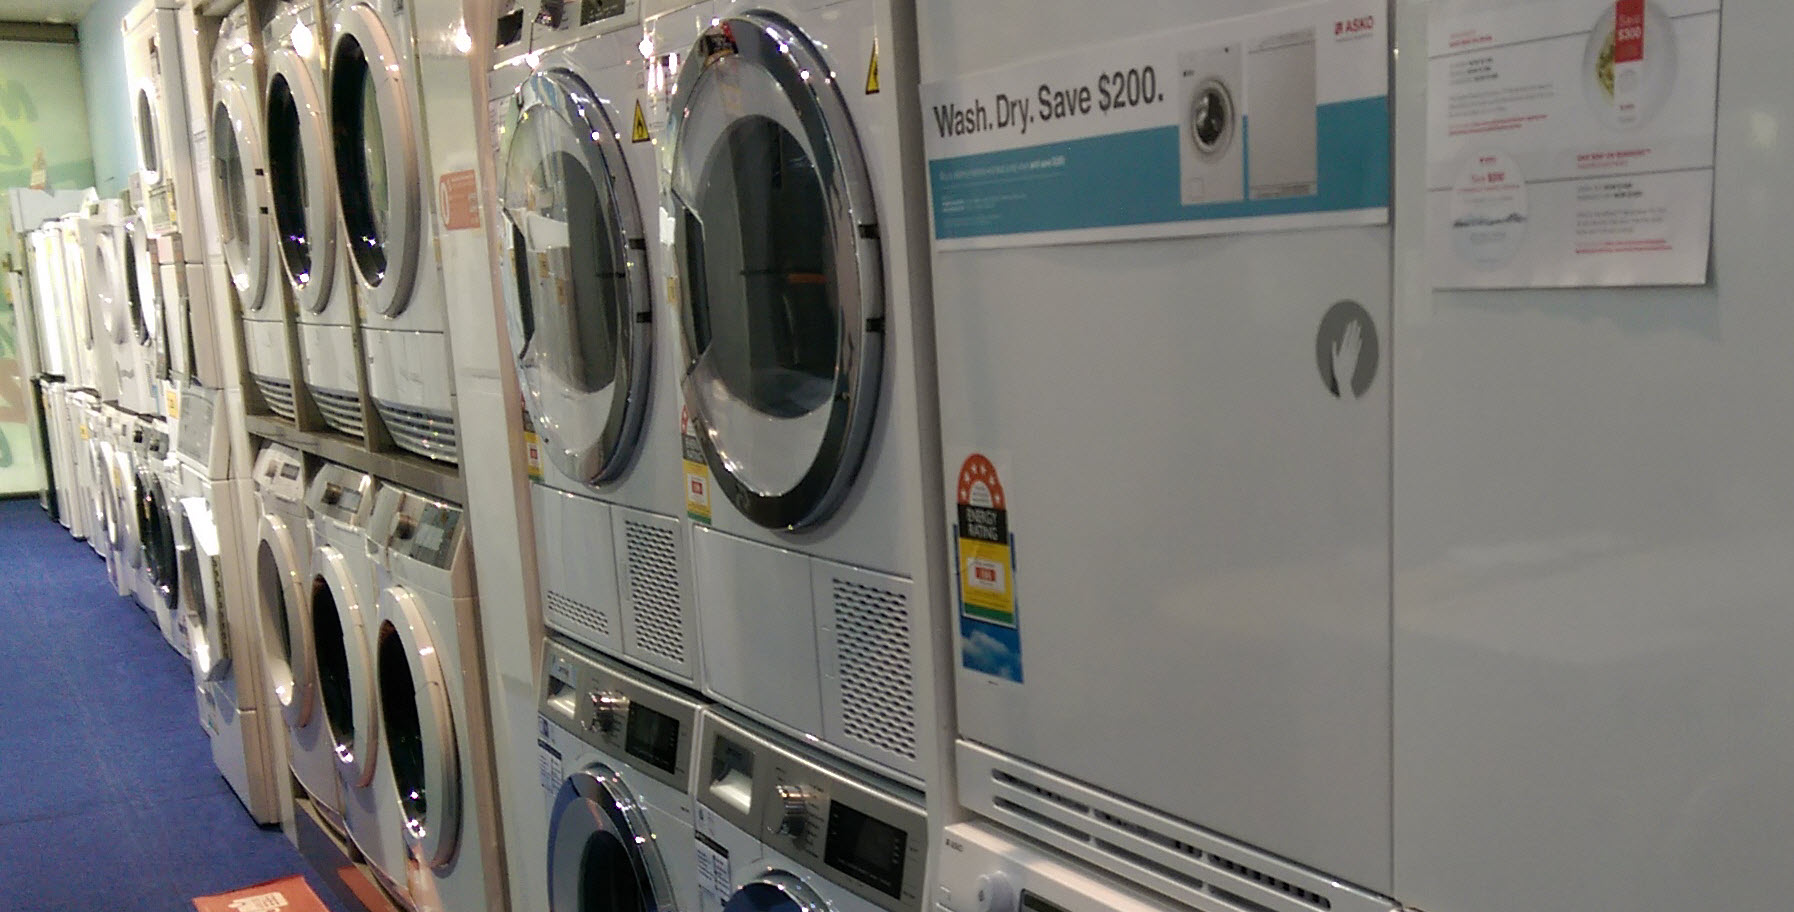 Camberwell Electrics In Store Walls filled with Washers & Dryers